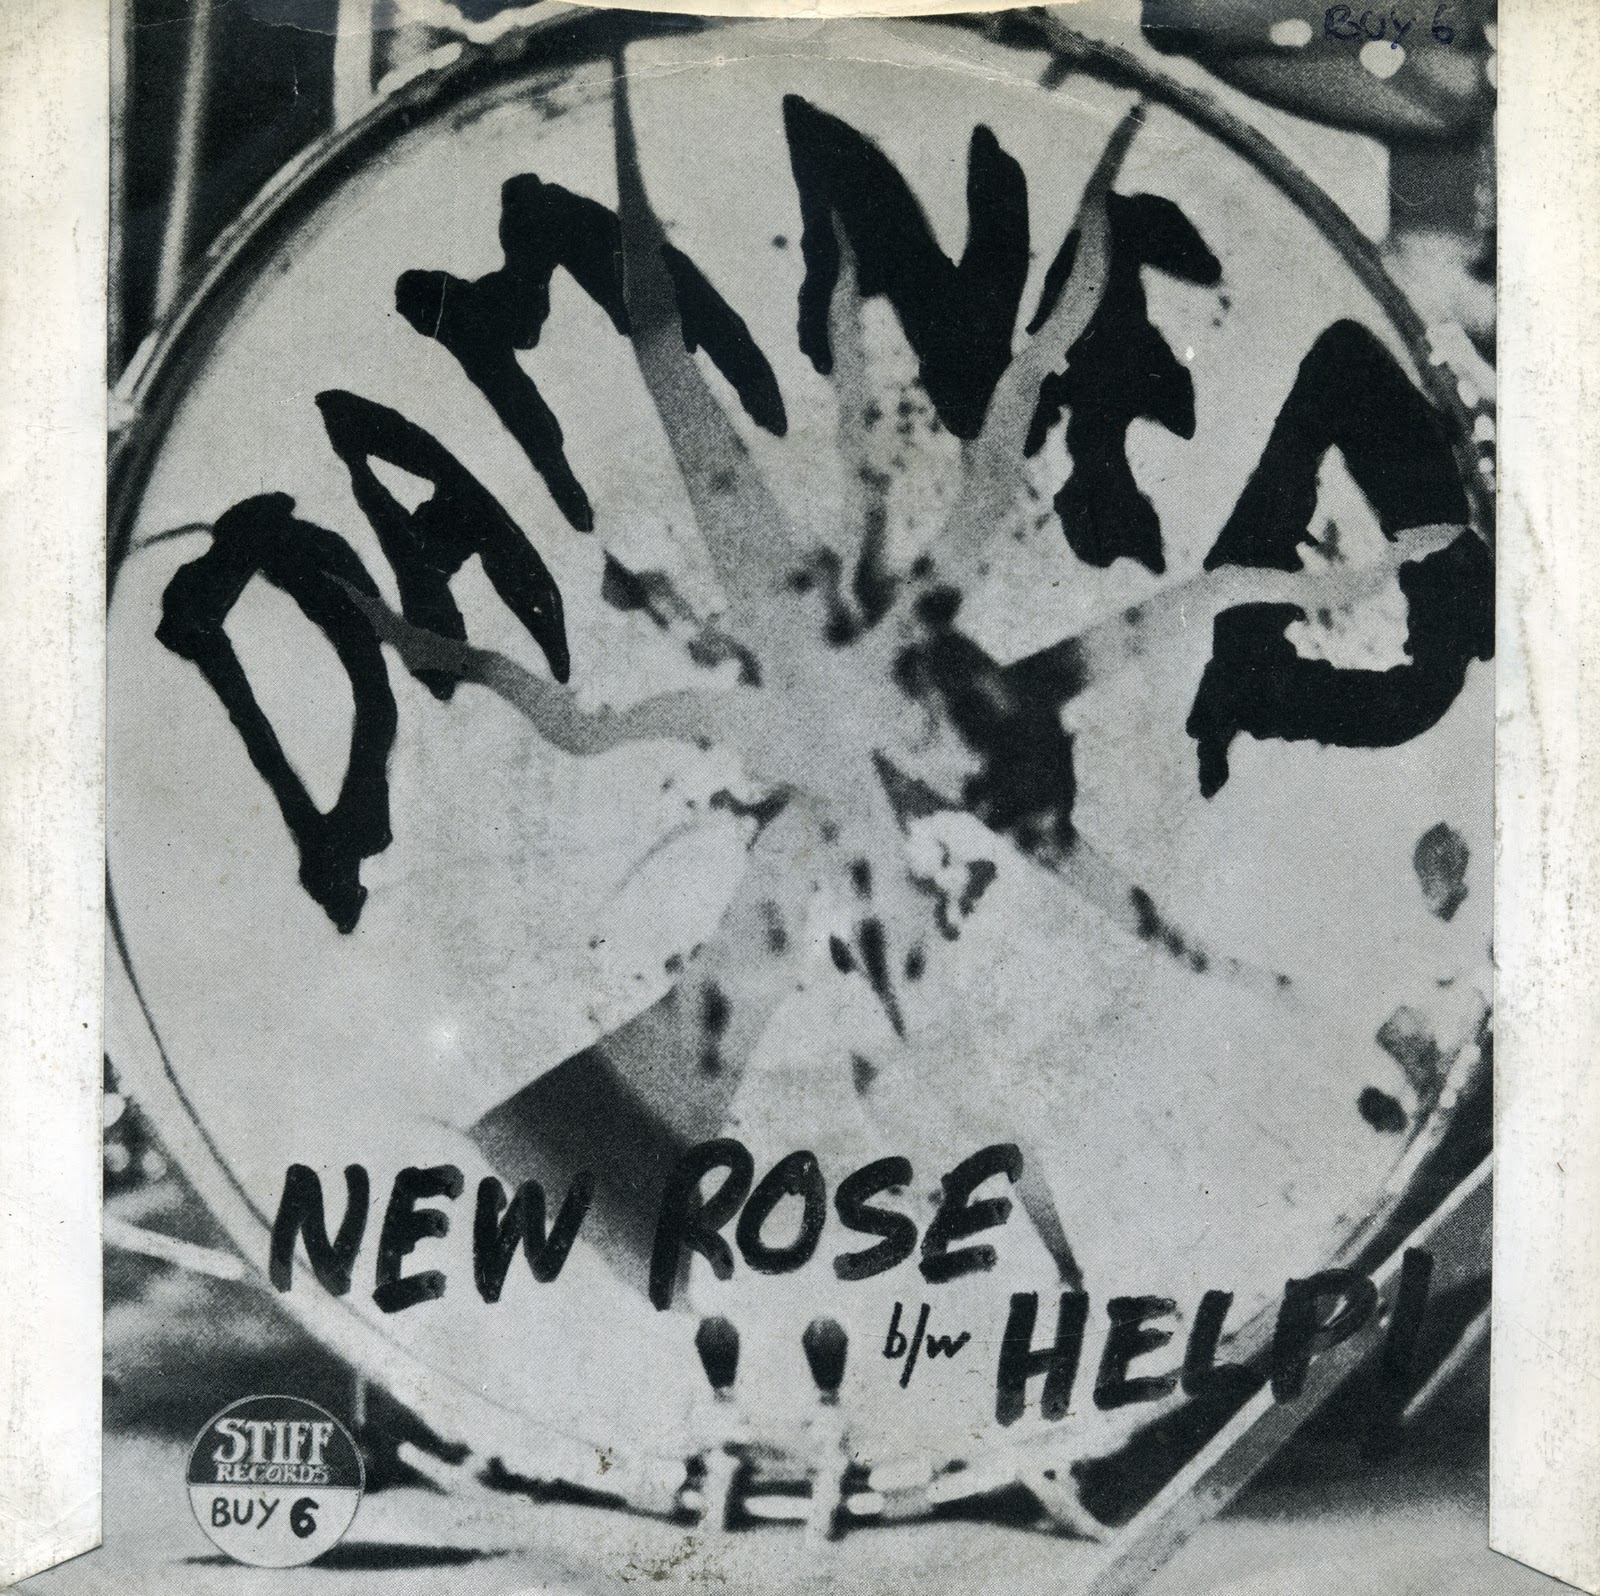 The Mangrove Delta Plan Collapsed Damned New Rose 45